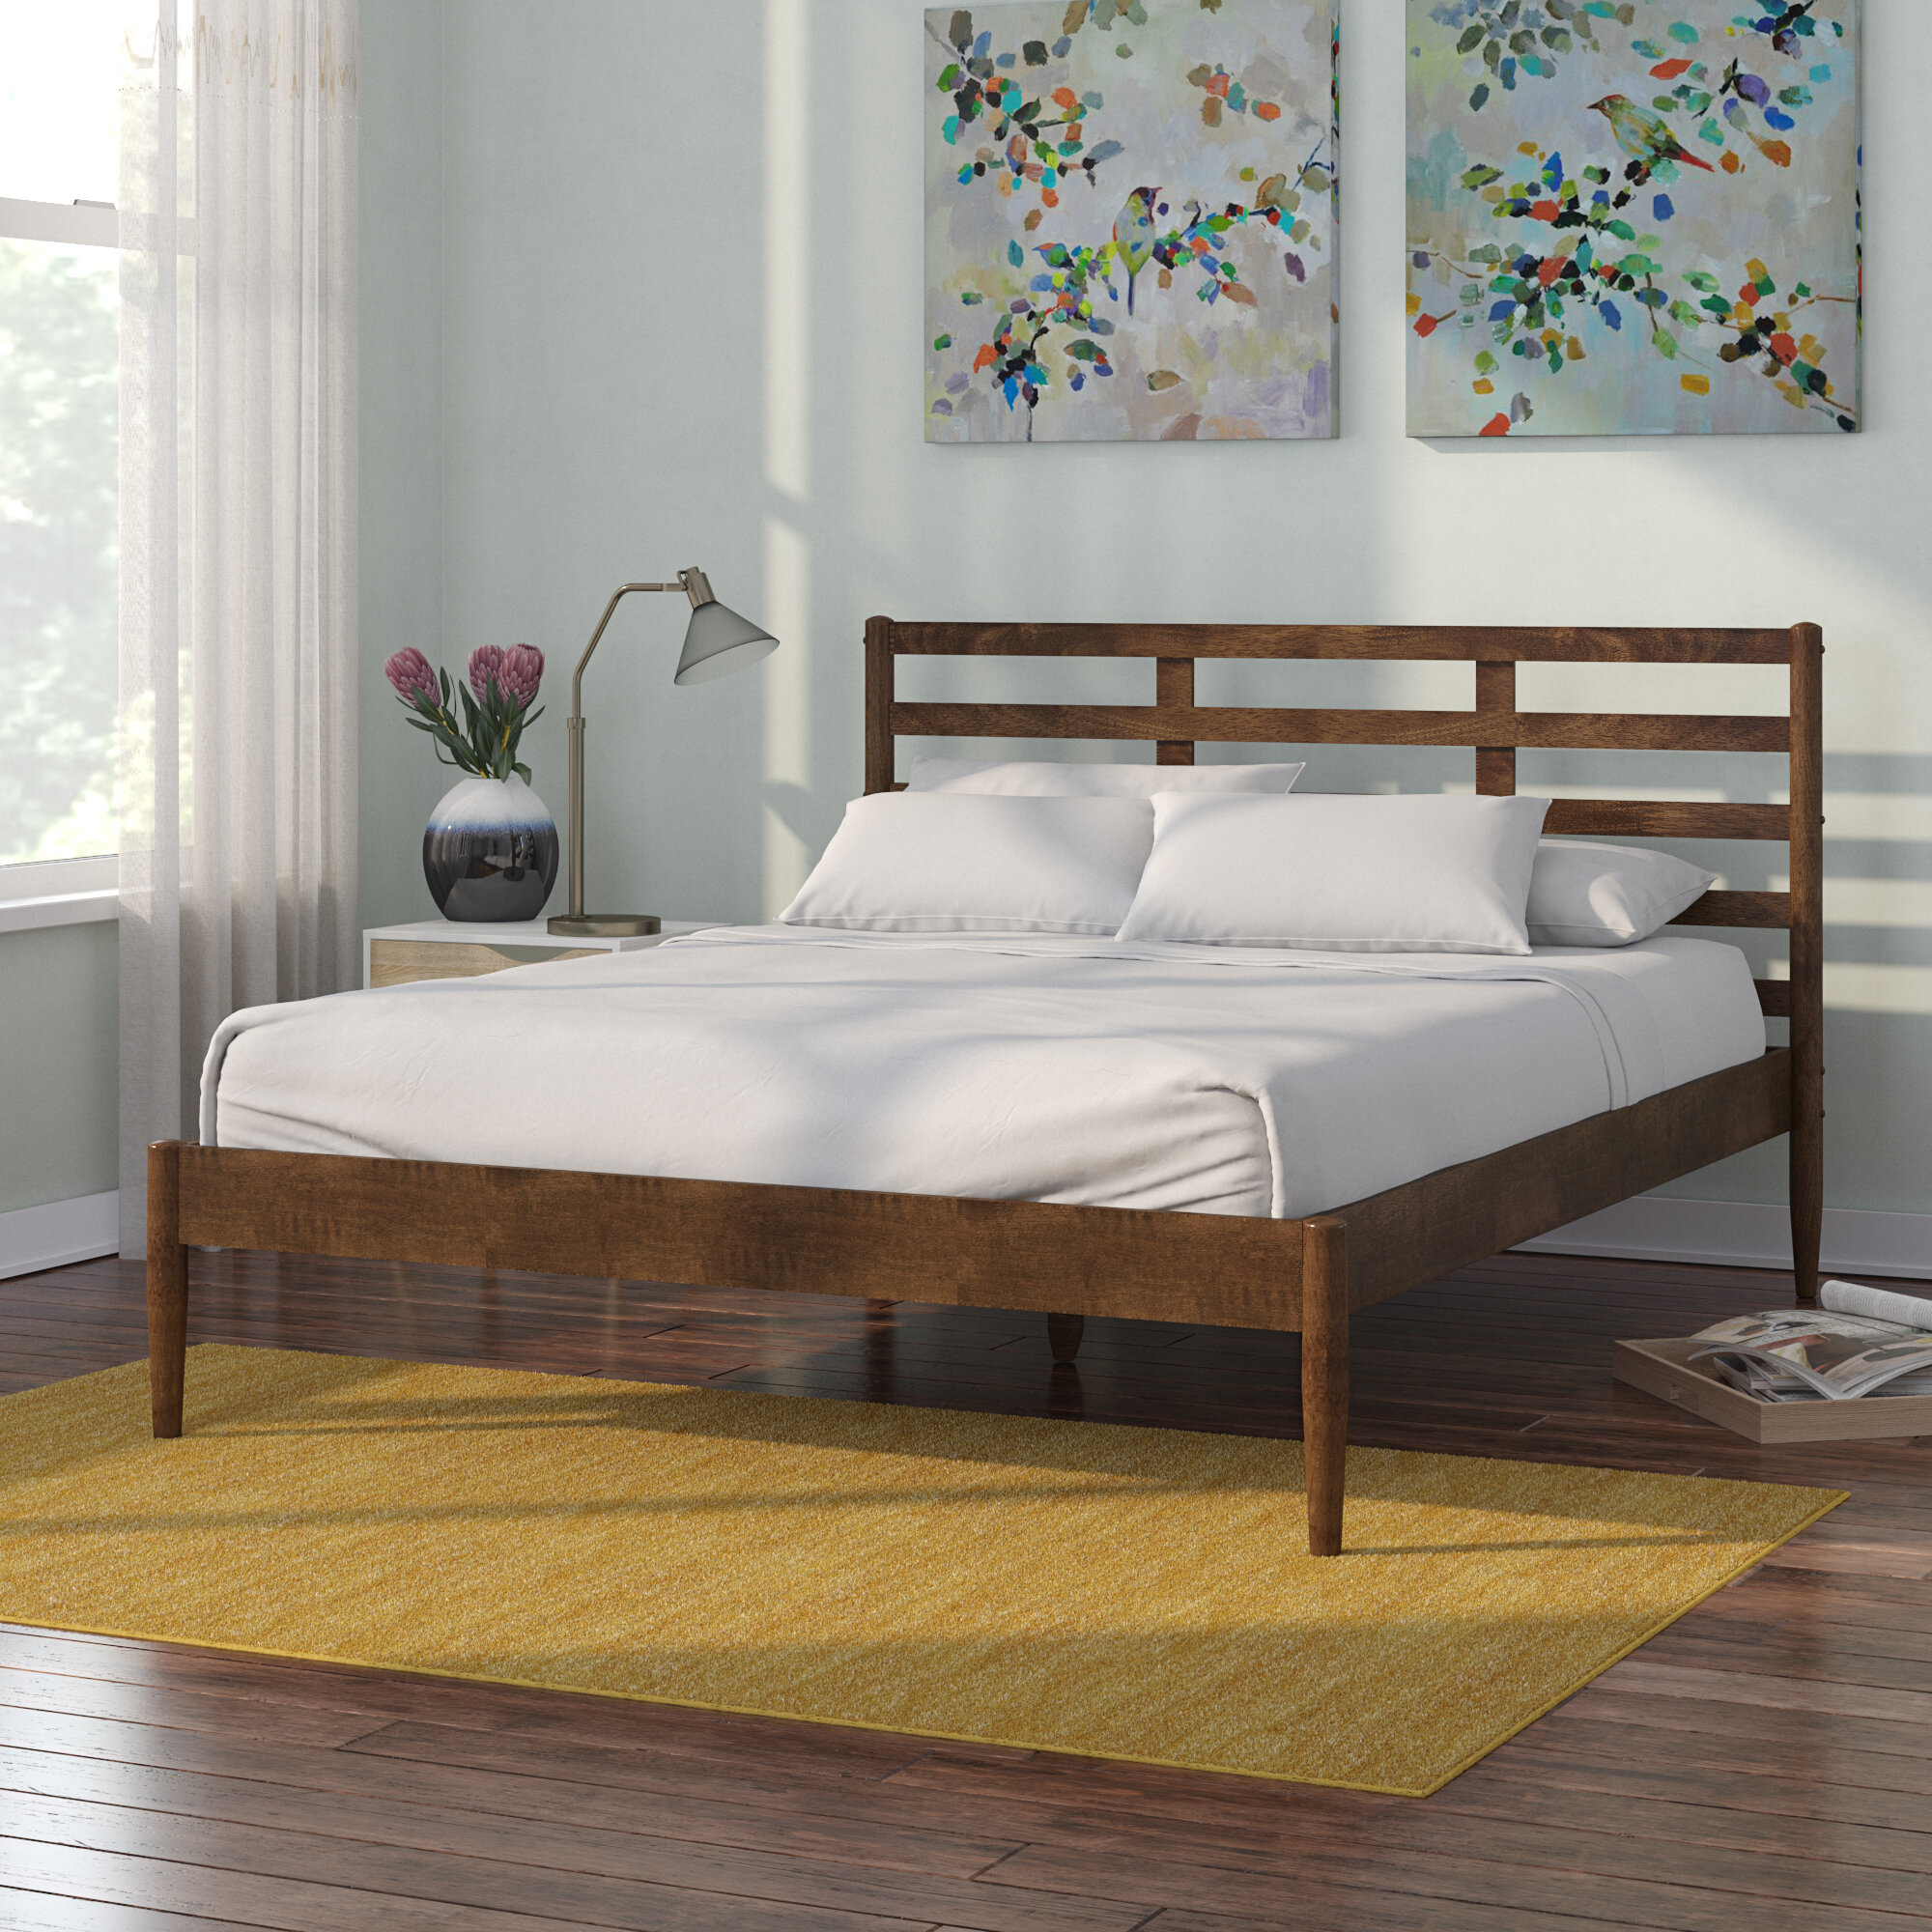 Langley street callum mid century modern platform bed reviews wayfair